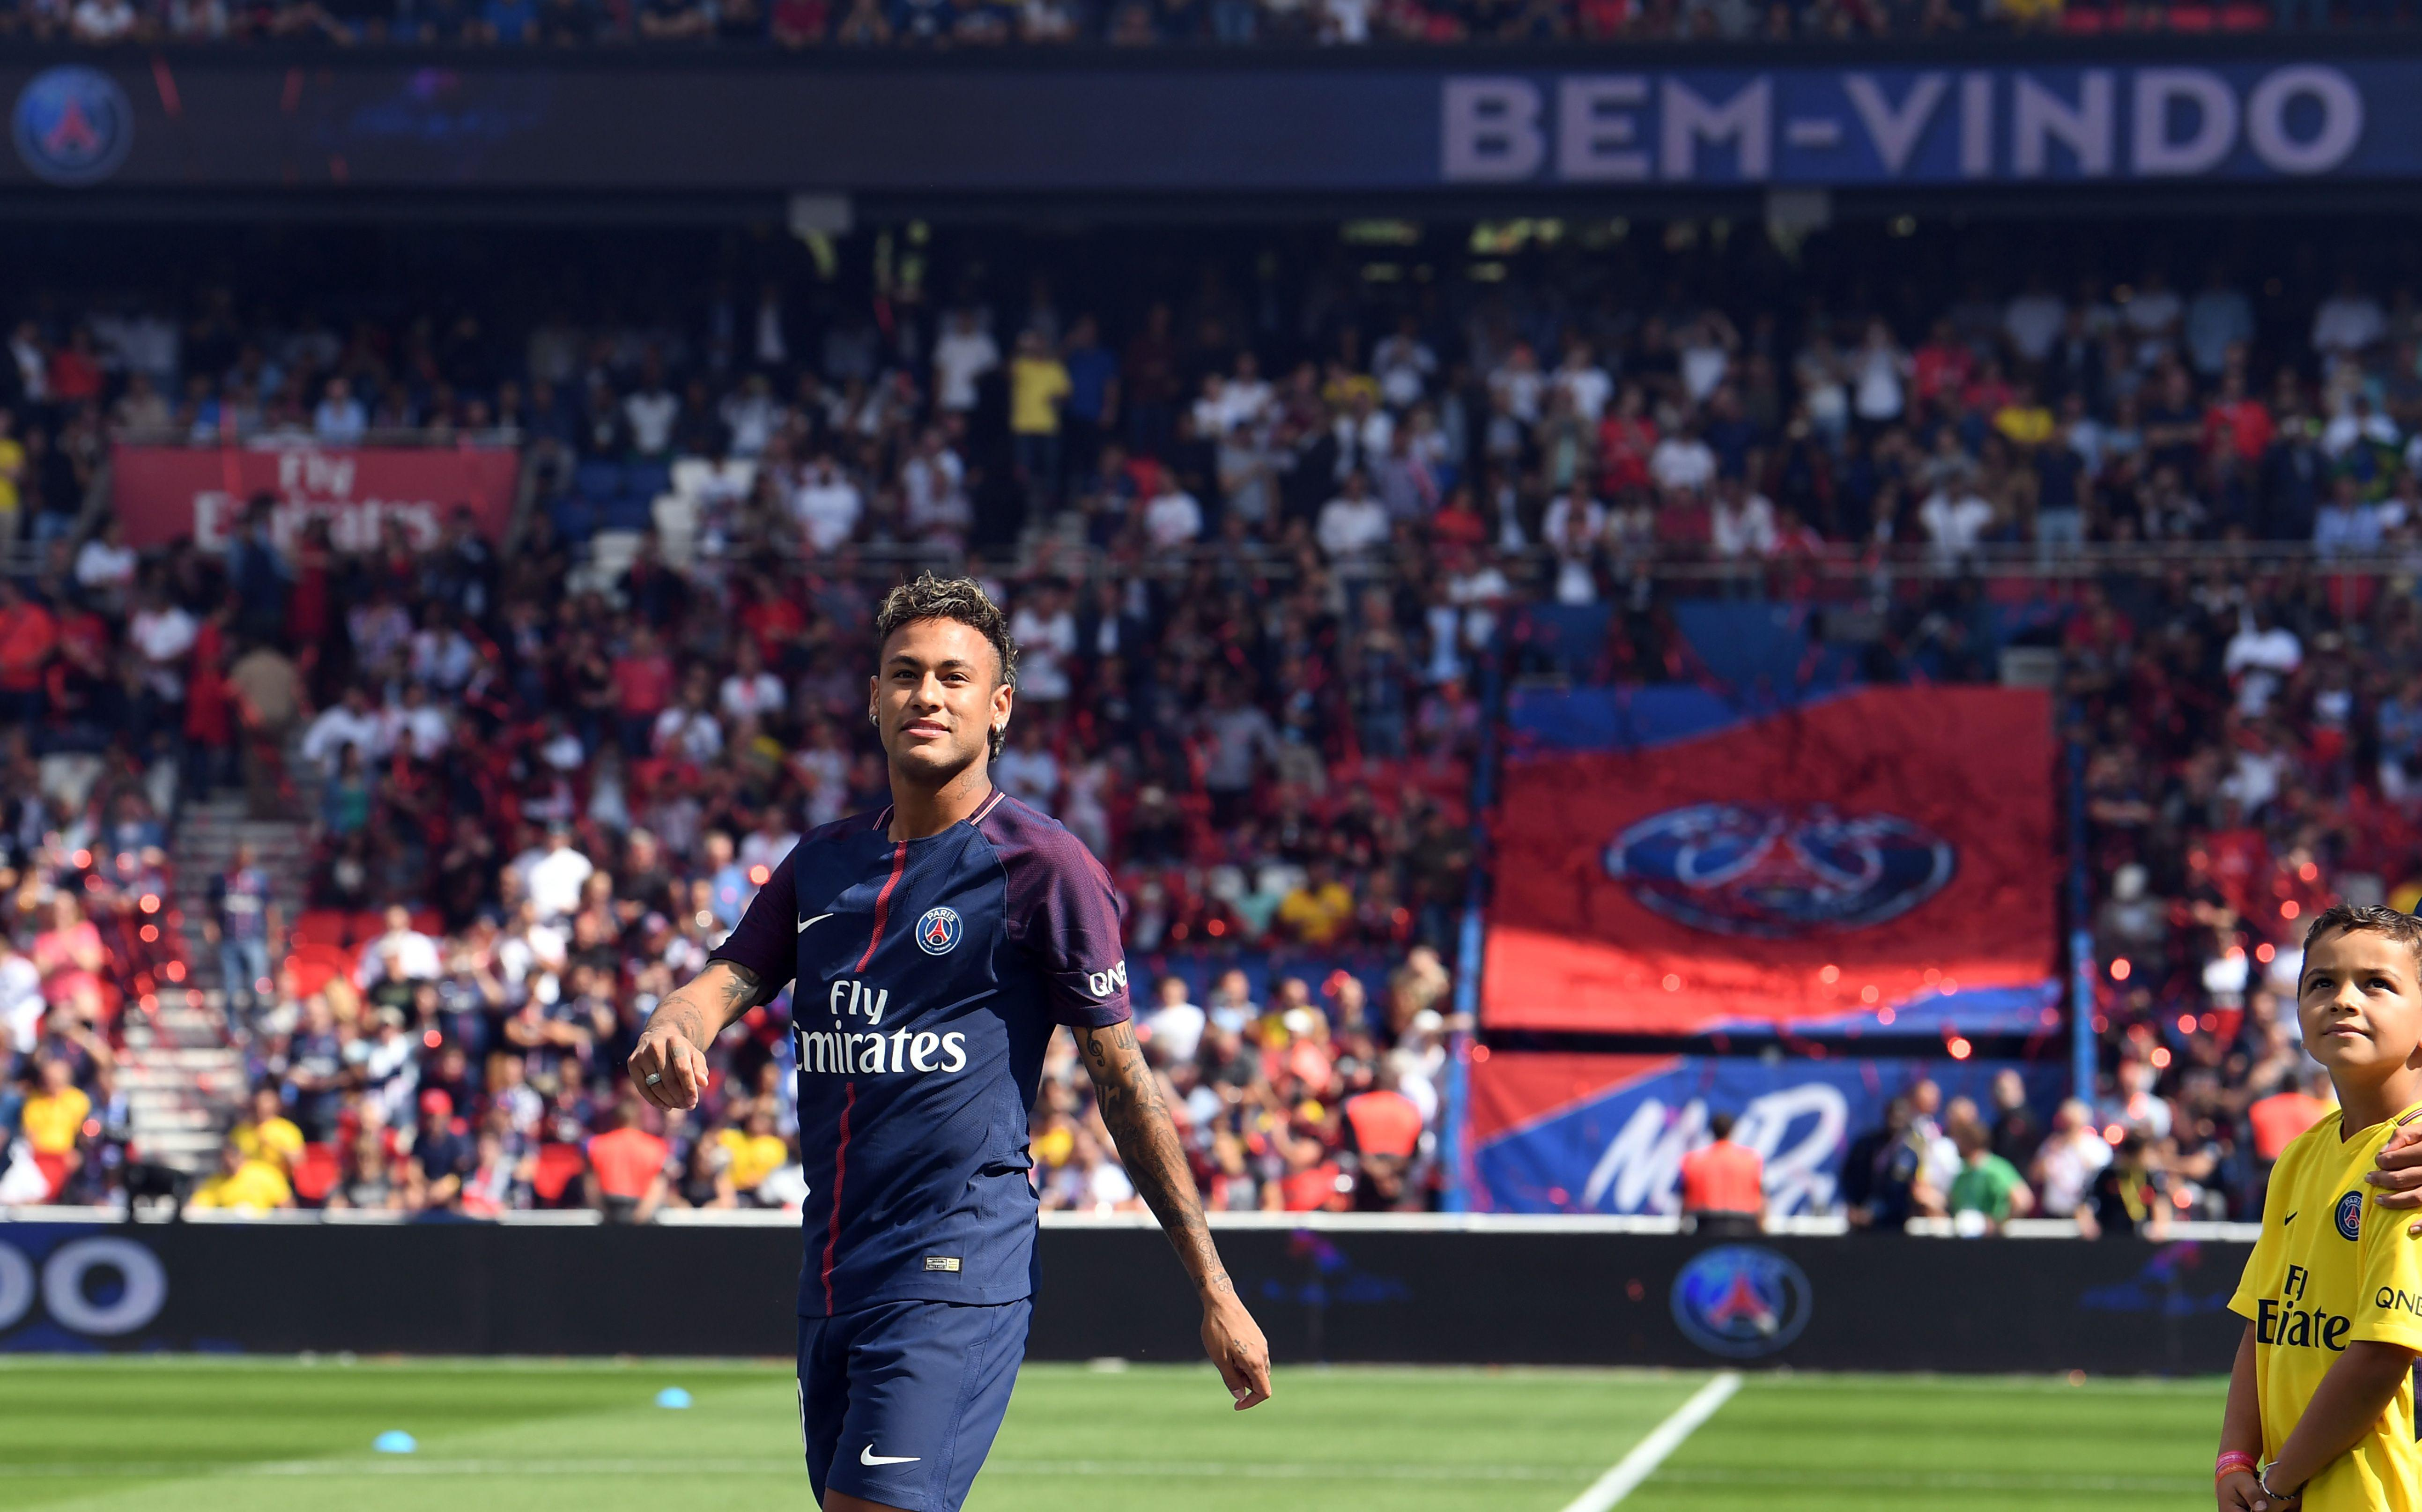 Neymar was unveiled to PSG fans last week after joining for a record 222 million euros